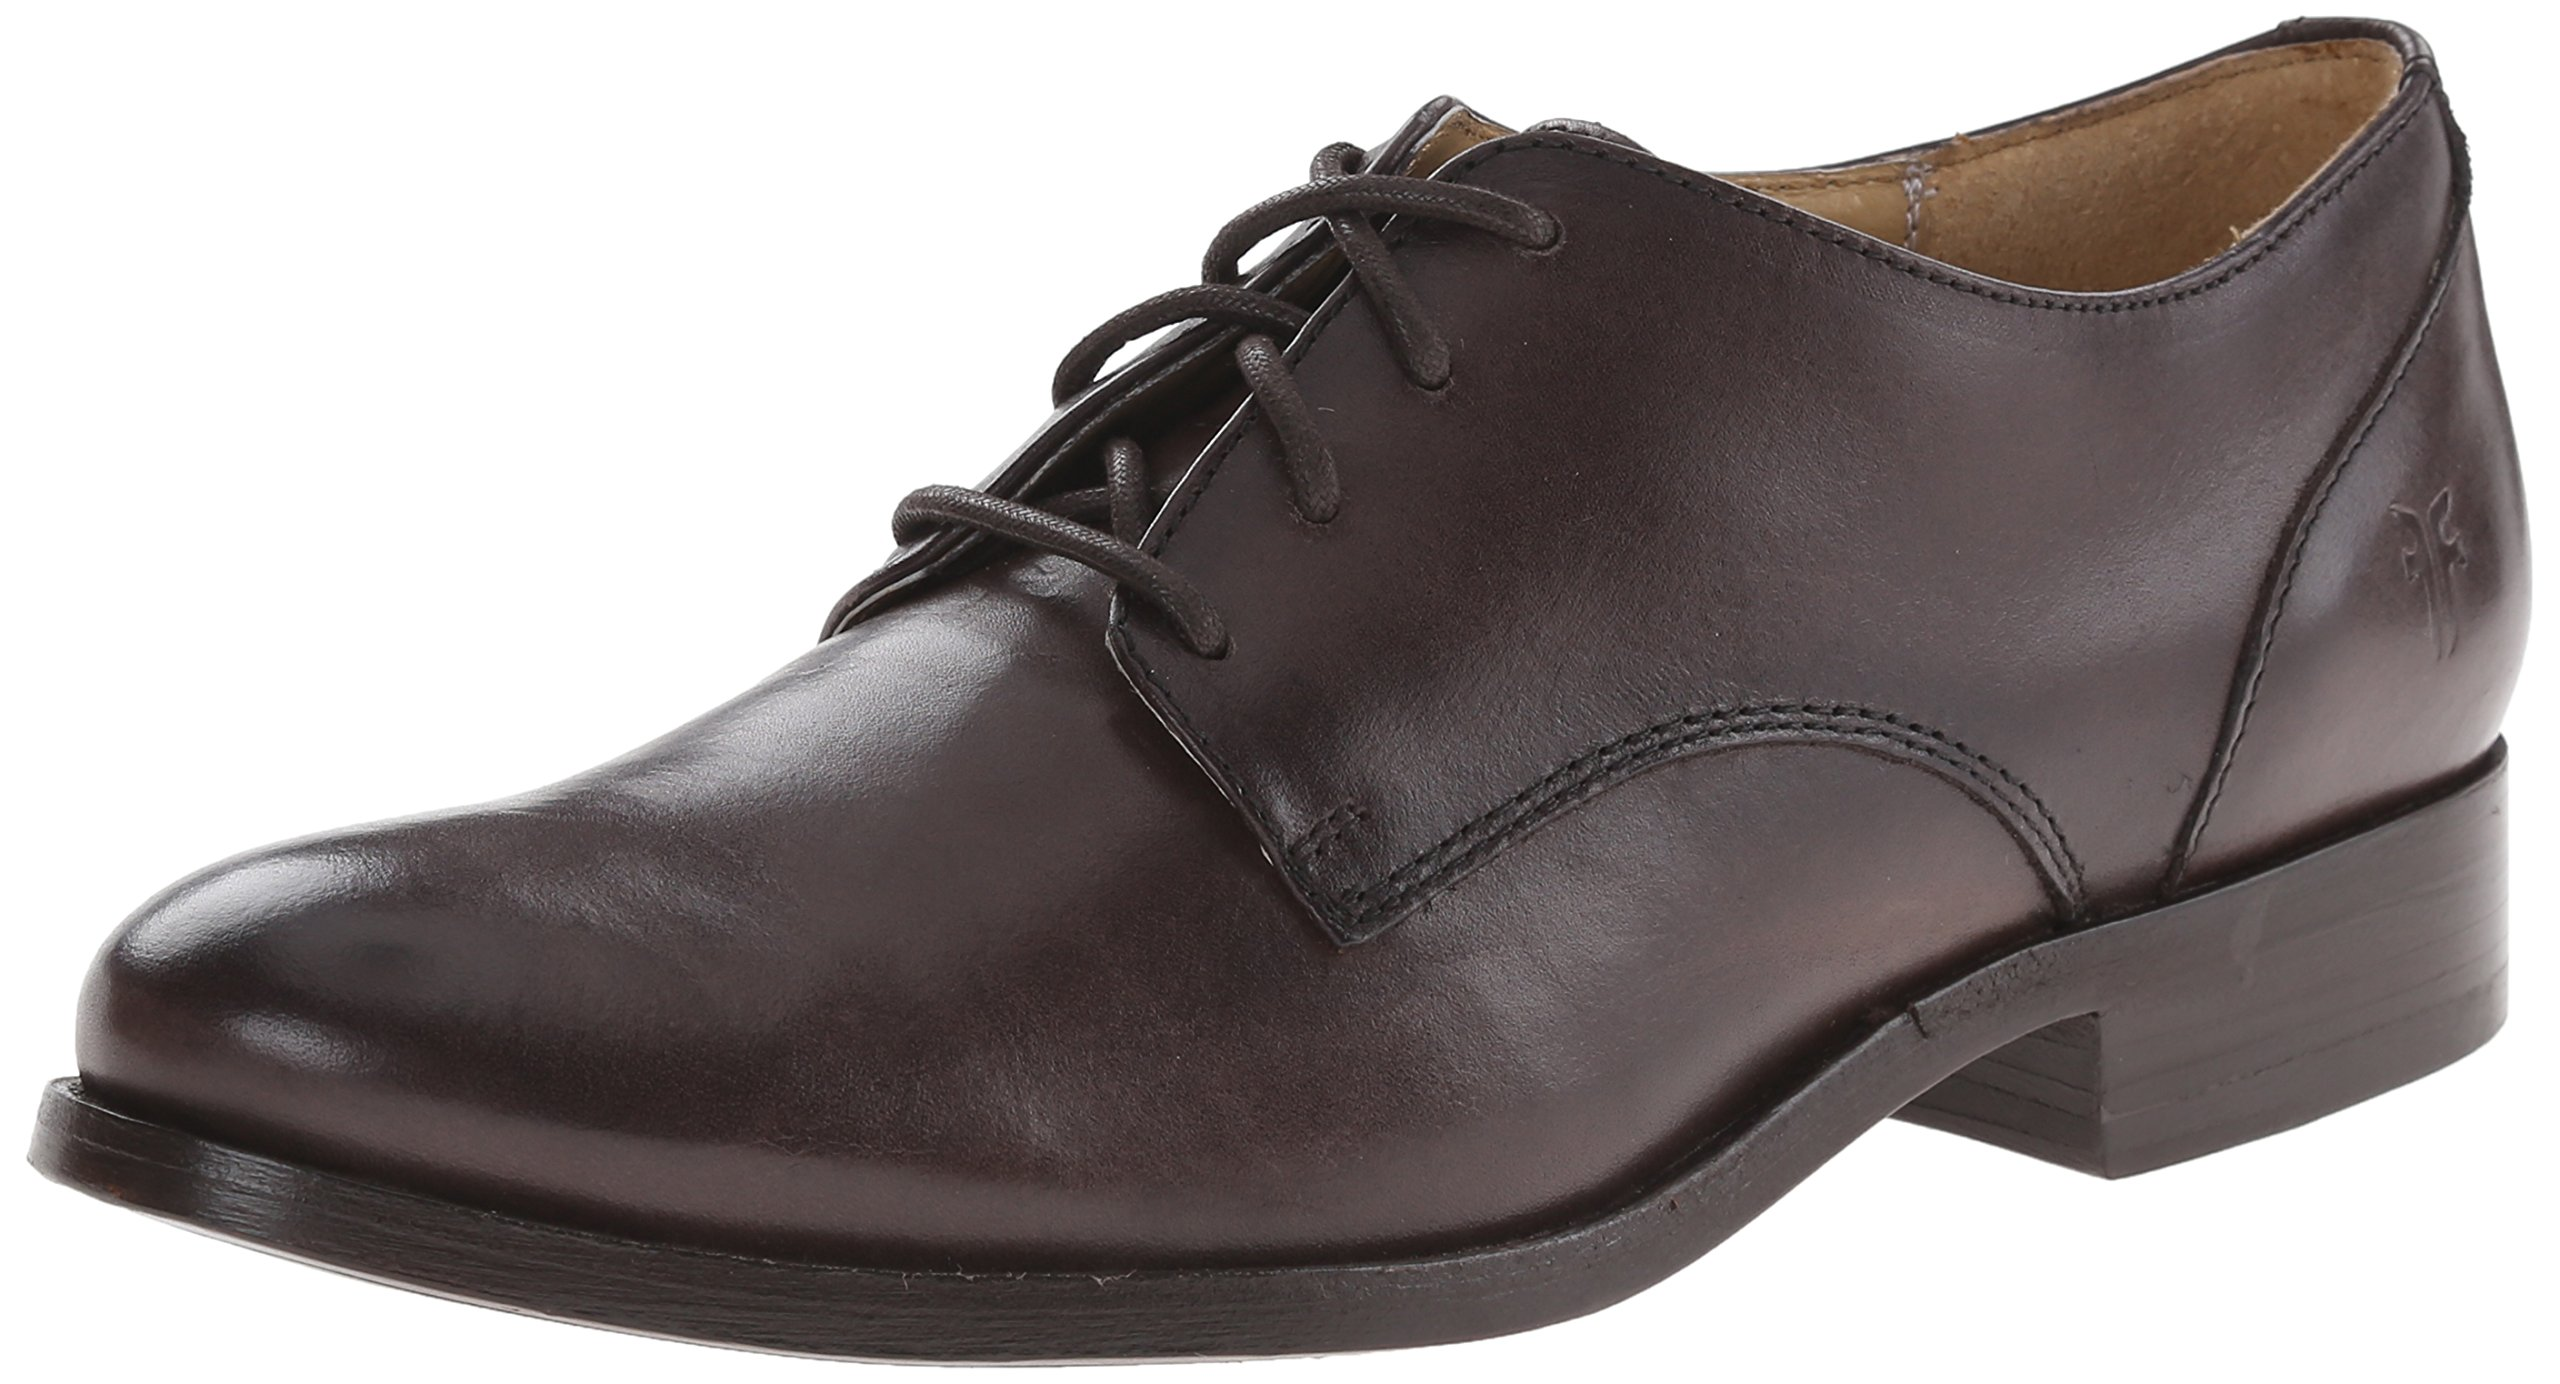 FRYE Women's Melissa-SMVLE Oxford, Dark Grey, 7 M US